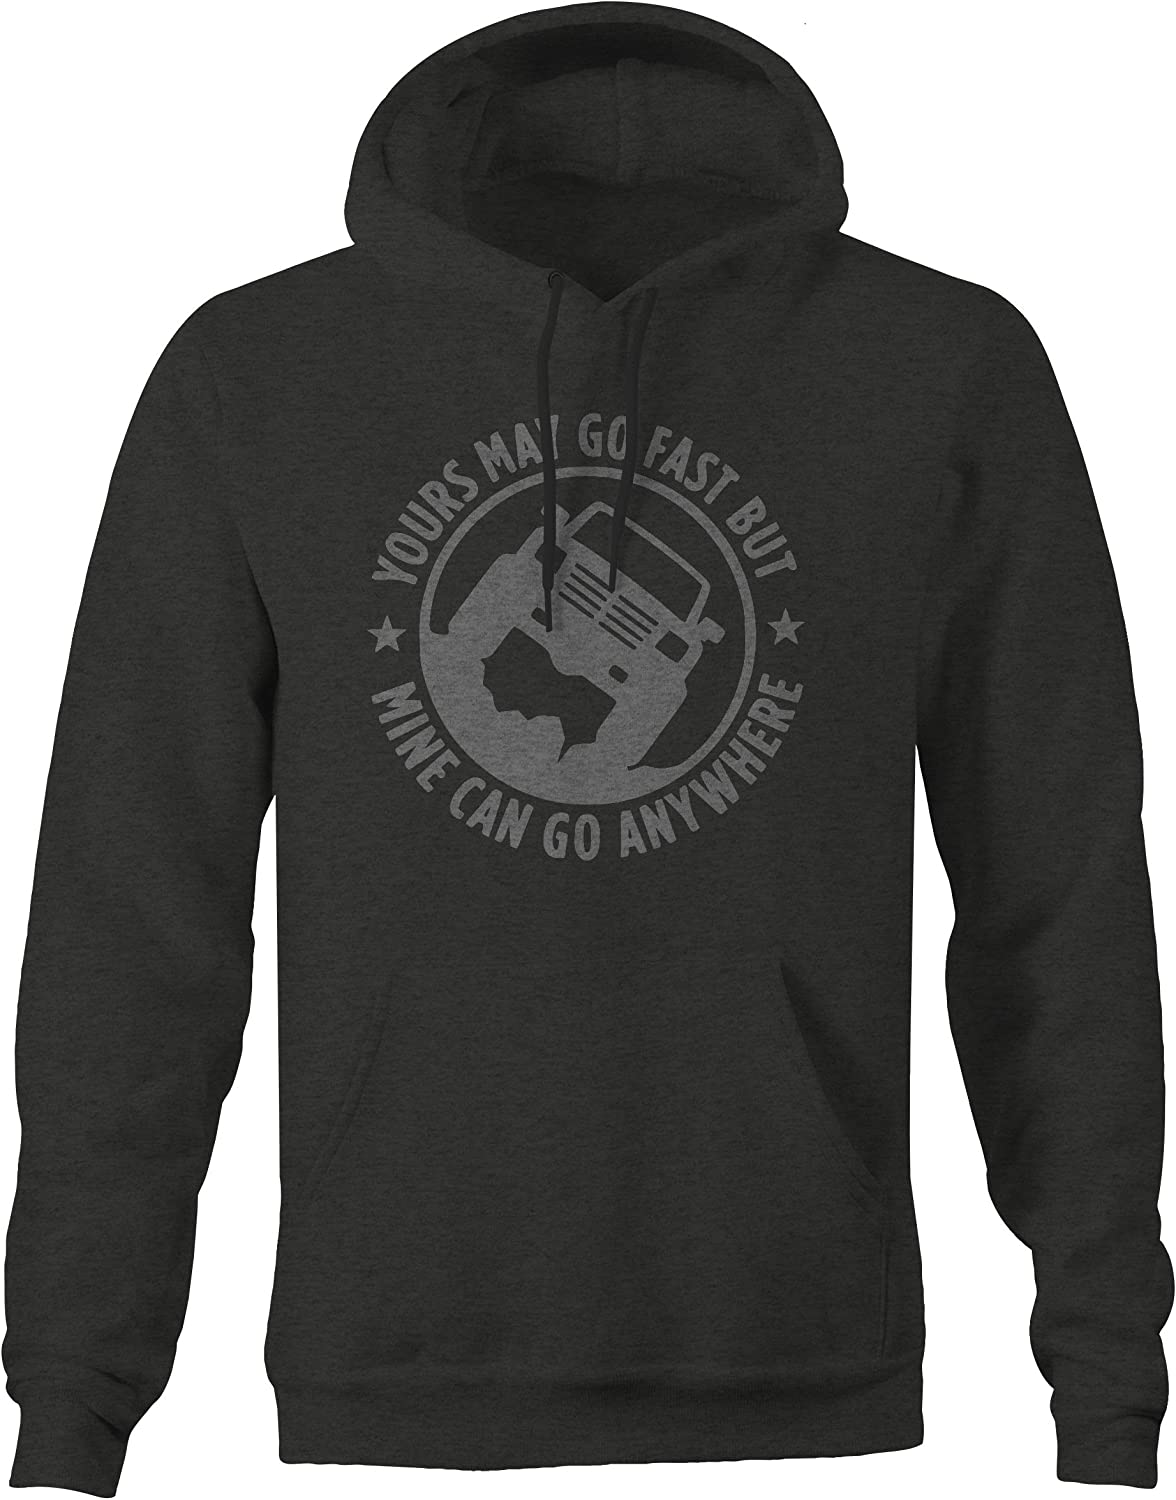 Go Anywhere Pickup Truck Hoodie for Men OS Gear American May Go Fast